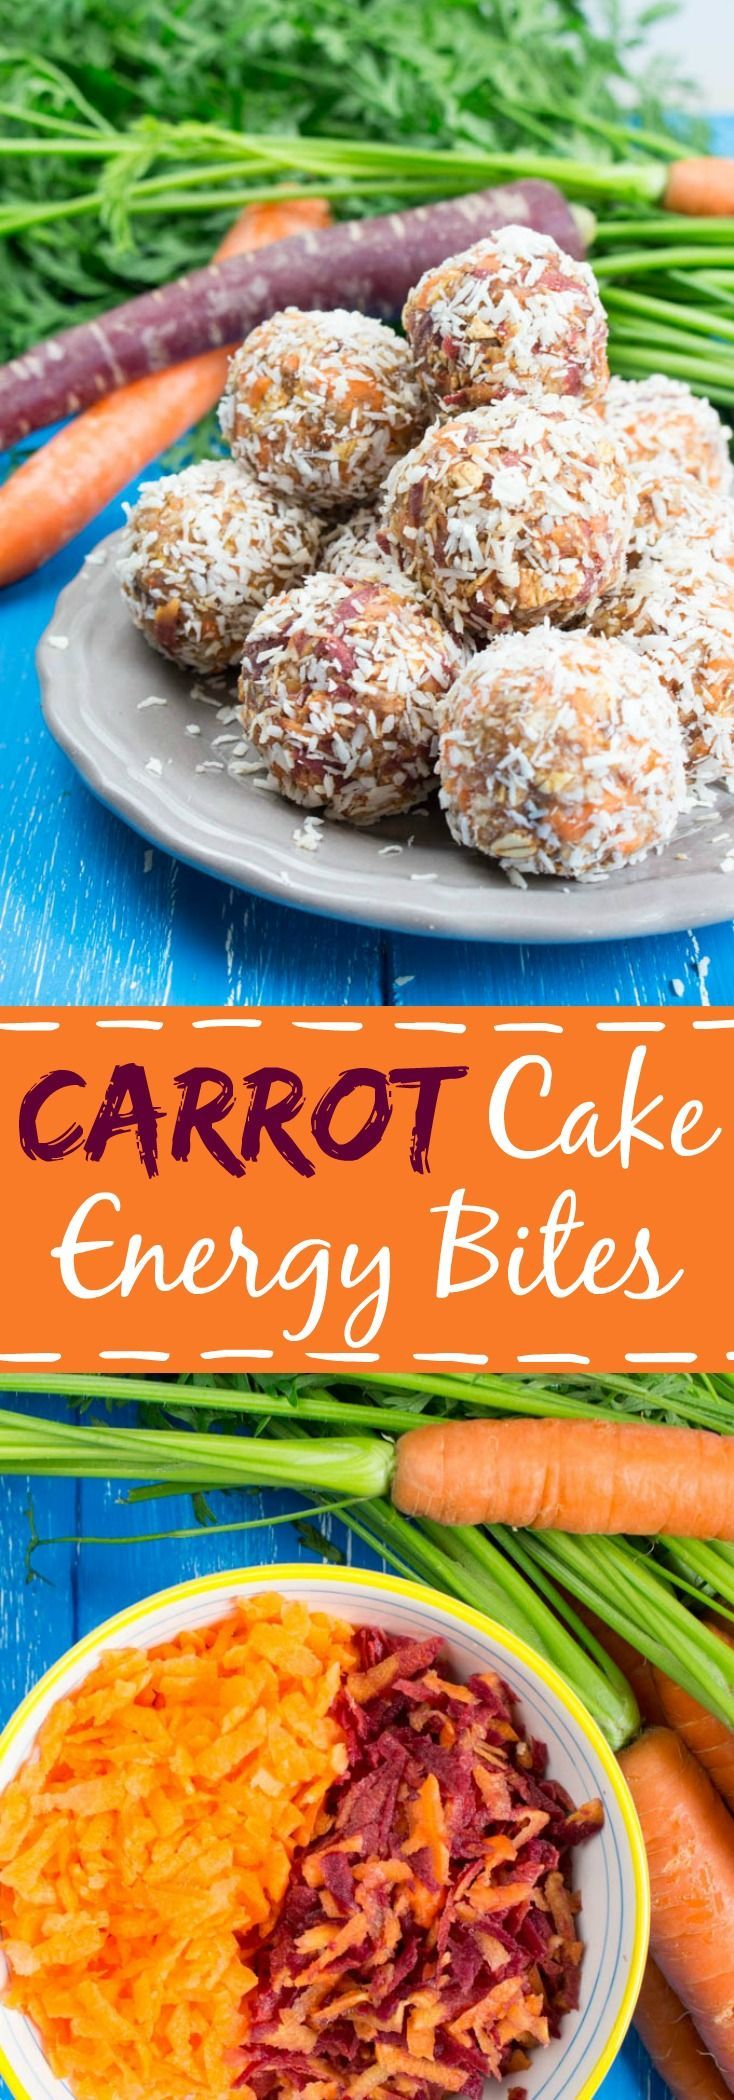 Carrot Cake No Bake Energy Bites with Cinnamon. So delicious and easy to make. The perfect treat!